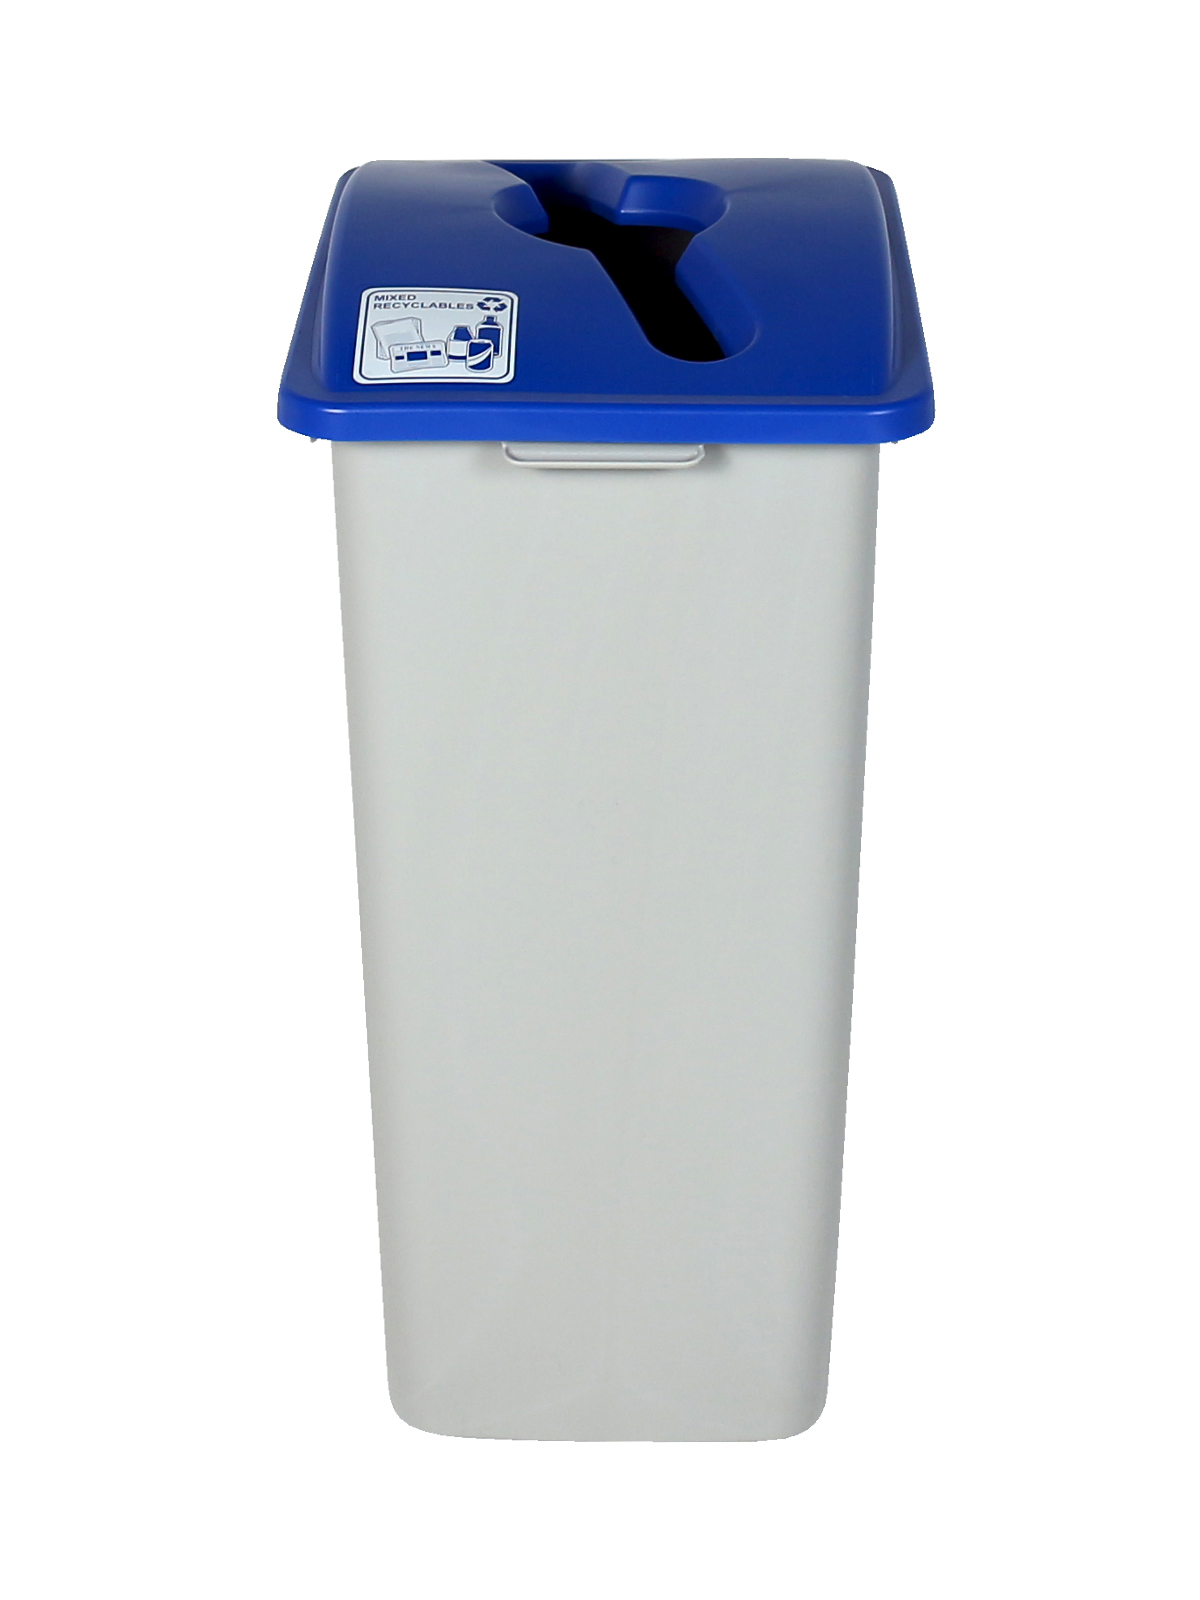 WASTE WATCHER XL - Single - Mixed Recyclables - Mixed - Grey-Blue